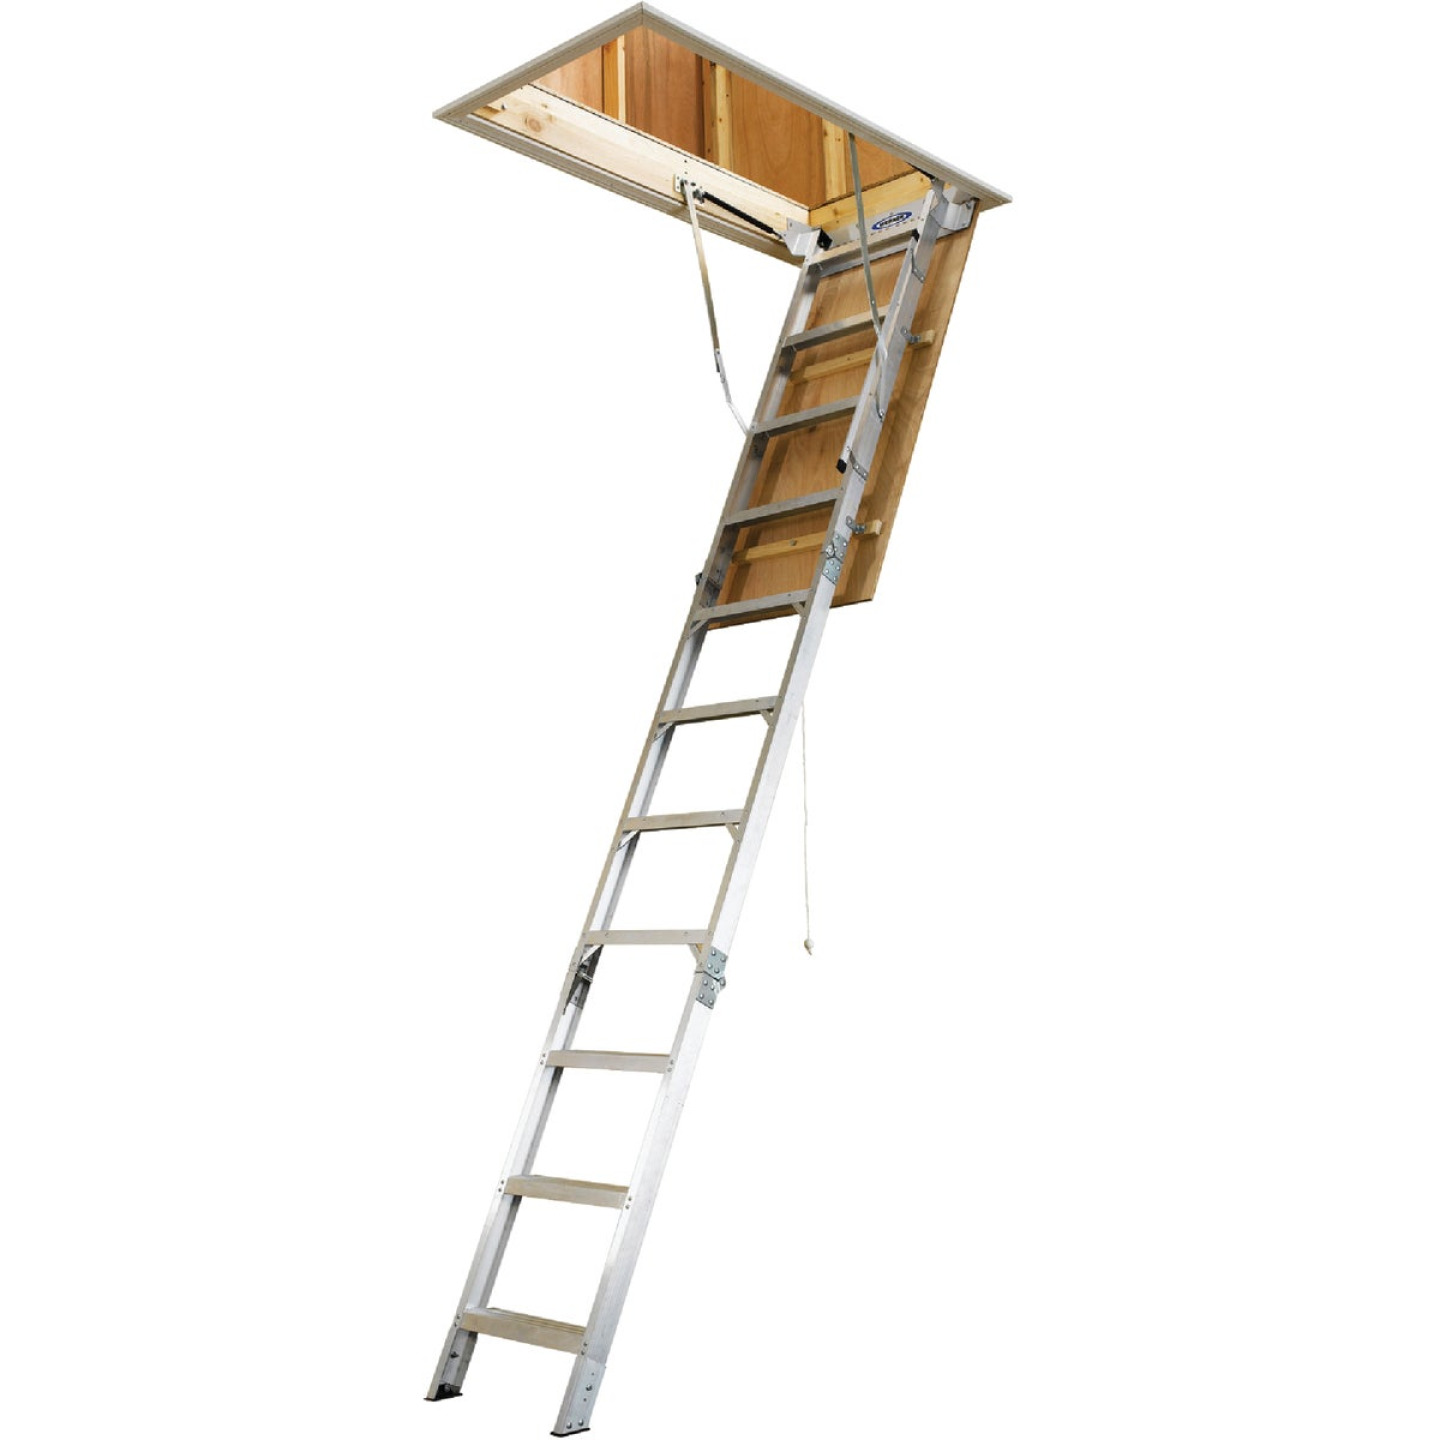 Werner Universal 8 Ft. to 10 Ft. 22-1/2 In. x 54 In. Aluminum Attic Stairs, 375 Lb. Load Image 5